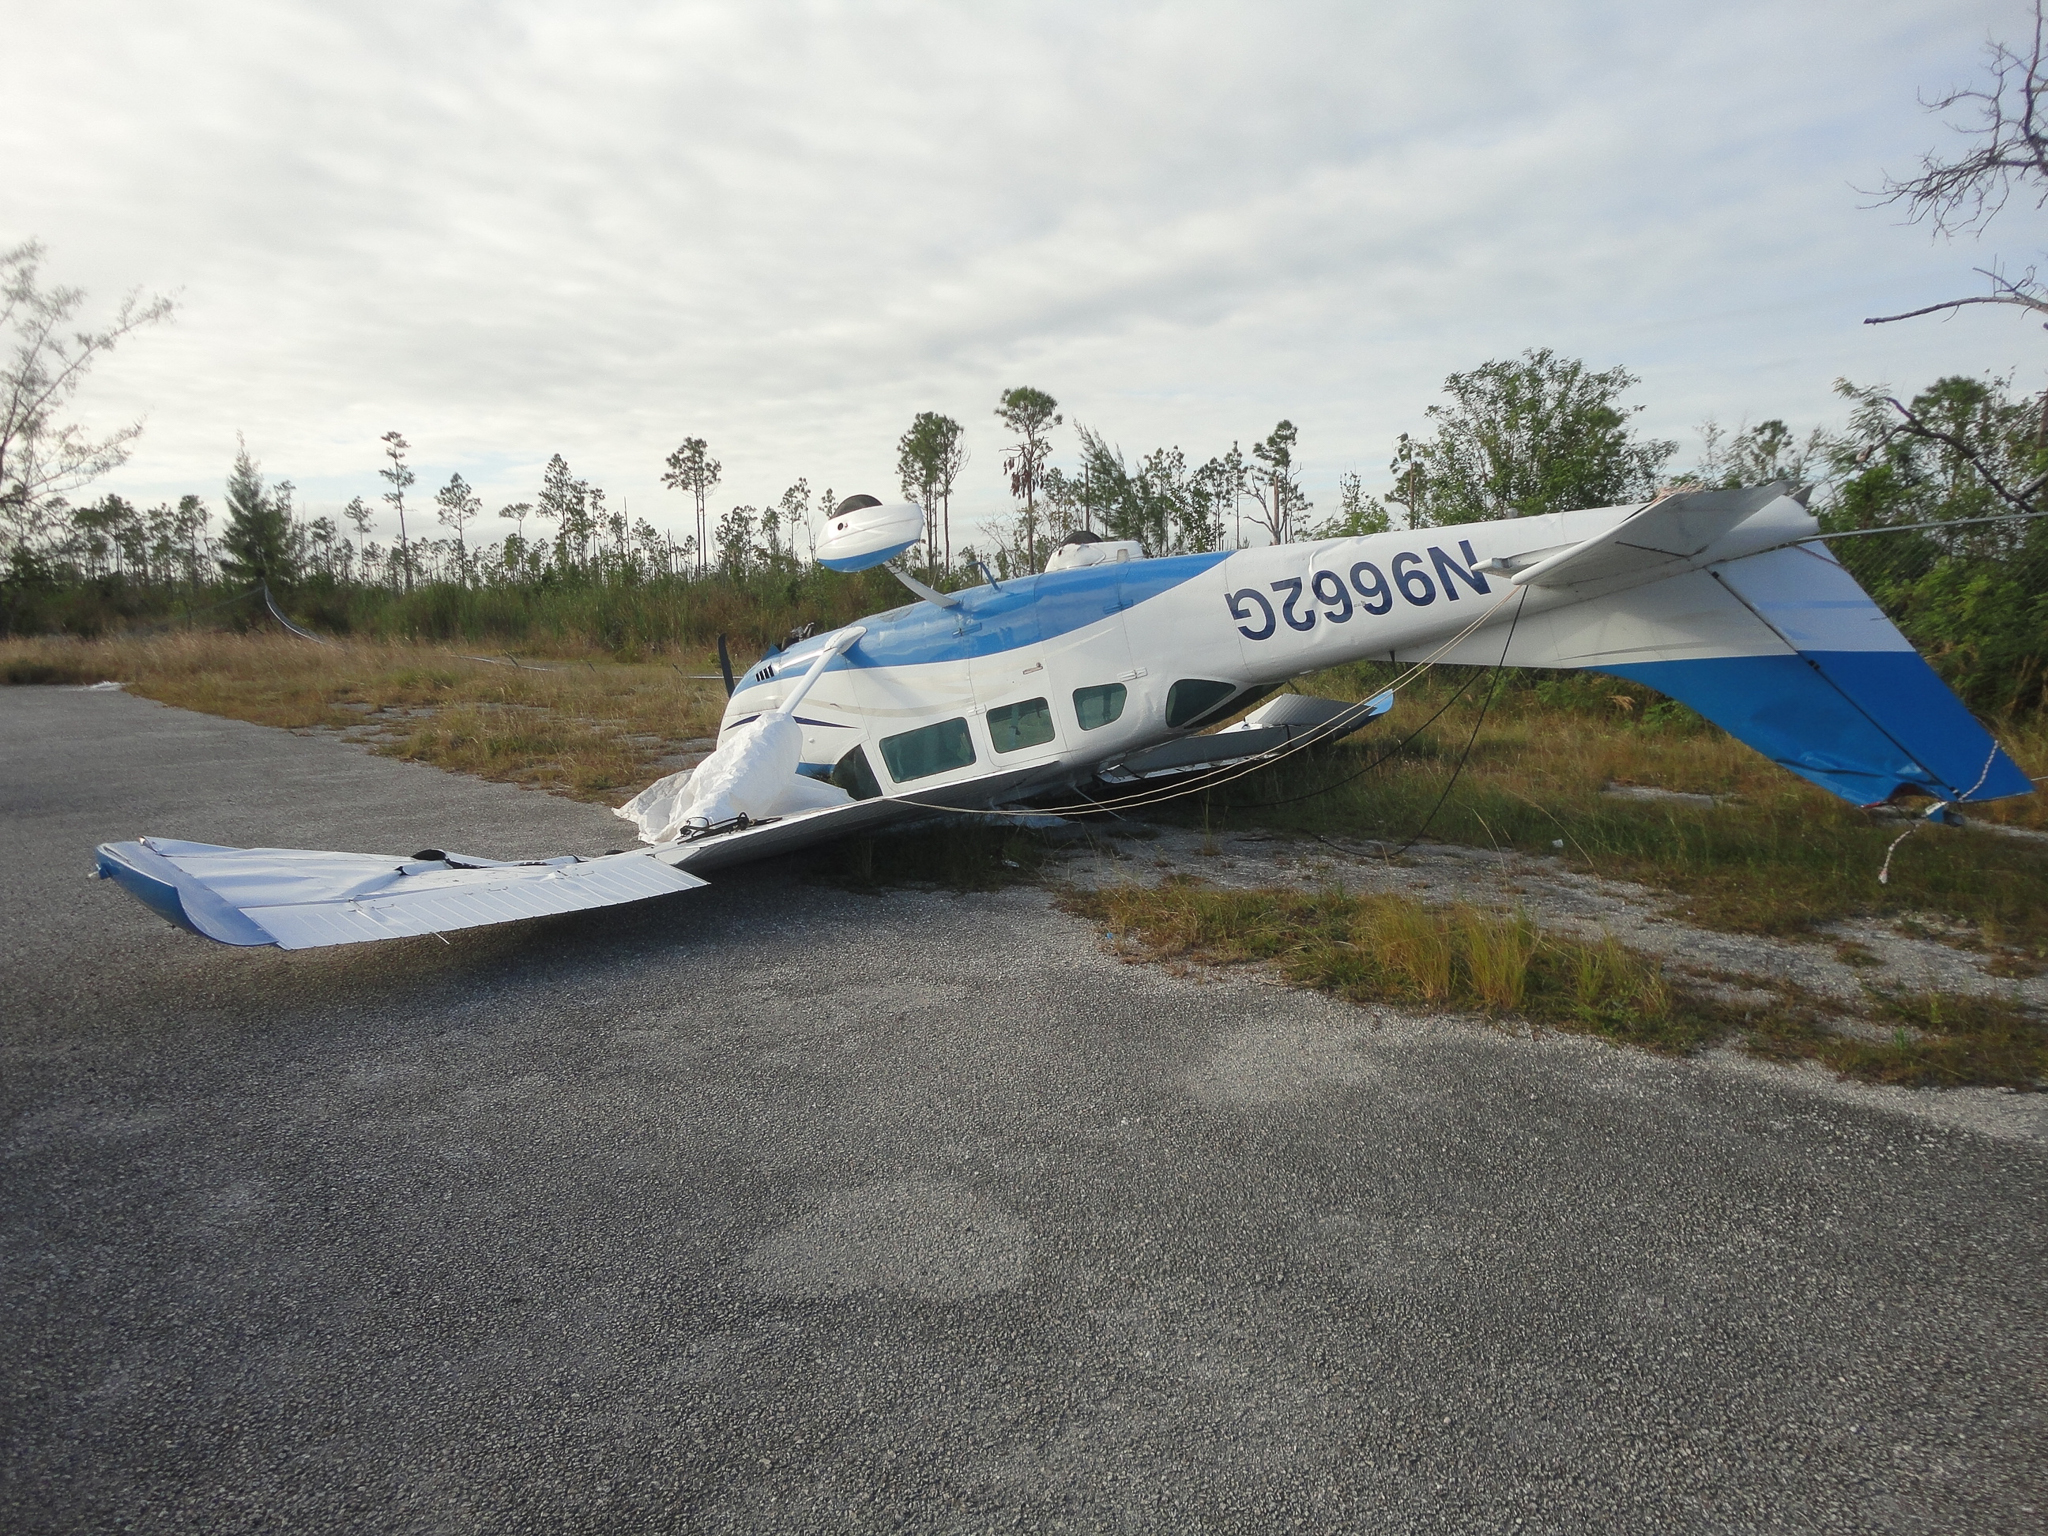 A toppled plane remains months after Hurricane Matthew wreaked havoc on Andros Island. Photograph by David Brian Butvill